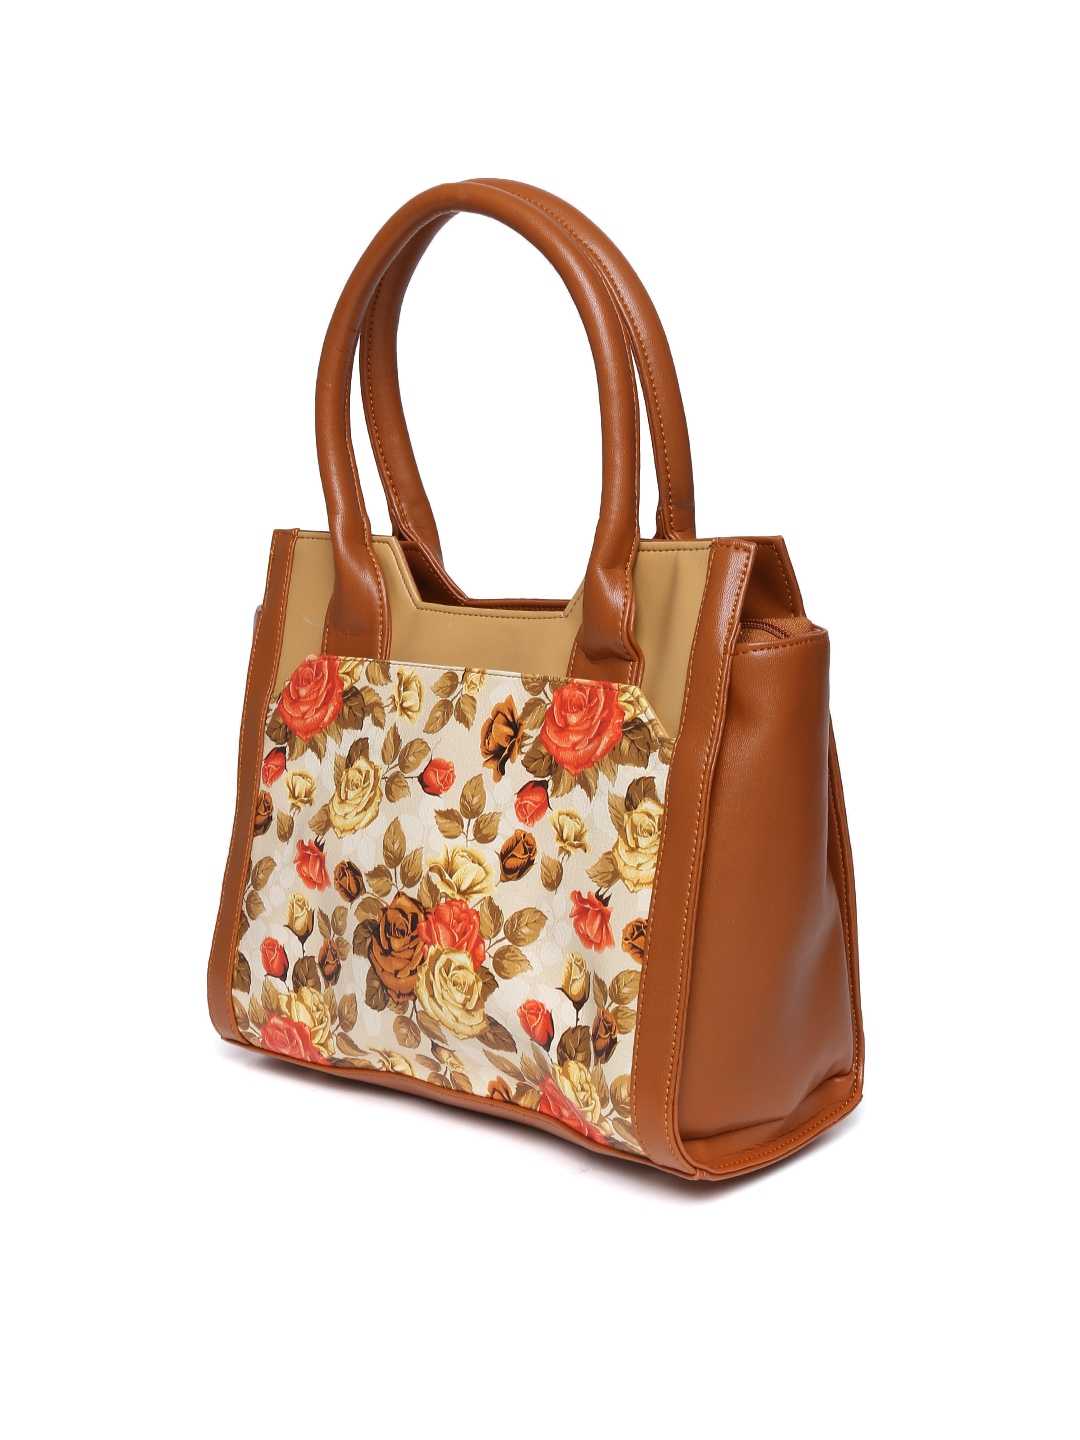 AR New York wholesales fashion forward handbags, purses and wallets. Based in NYC, you'll love our bags for their great materials, designs and colors. Home > Shop By Color > Apricot/Beige/Tan.